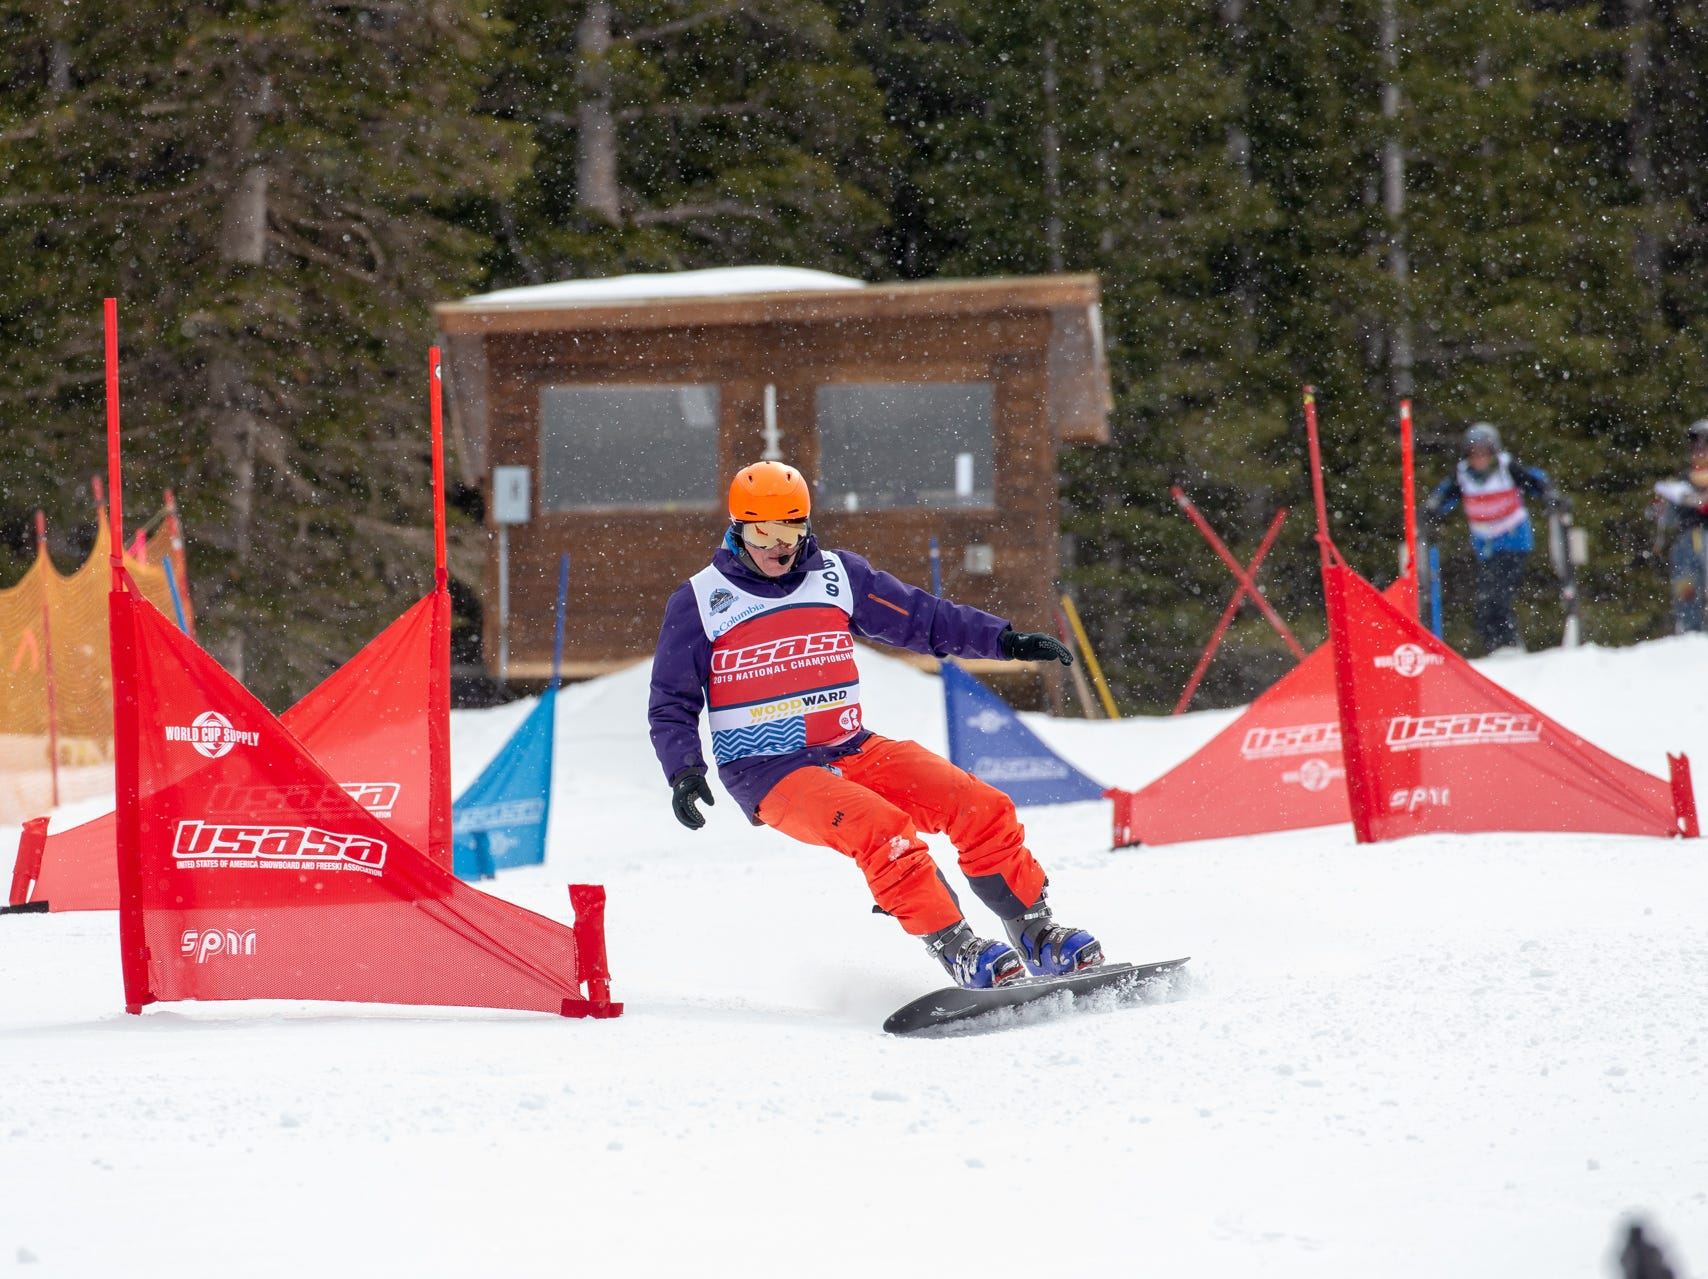 Shasta High coach Paul Schwartz / North State snowboarders compete at the 2019 USASA National Championships at Copper Mountain in Colorado.